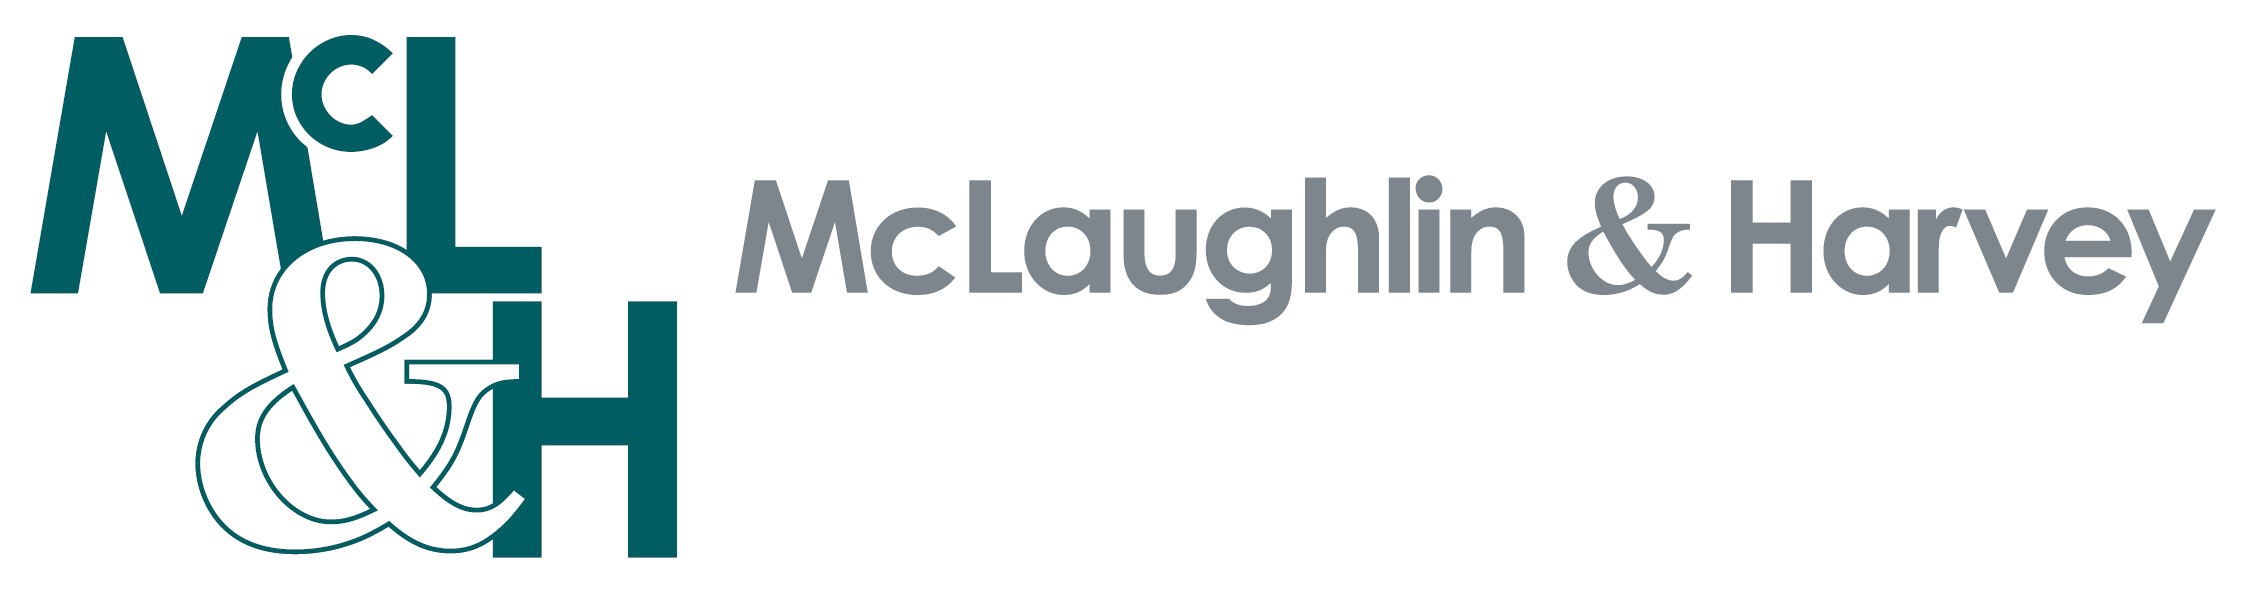 McLaughlin and Harvey Ltd Testimonial